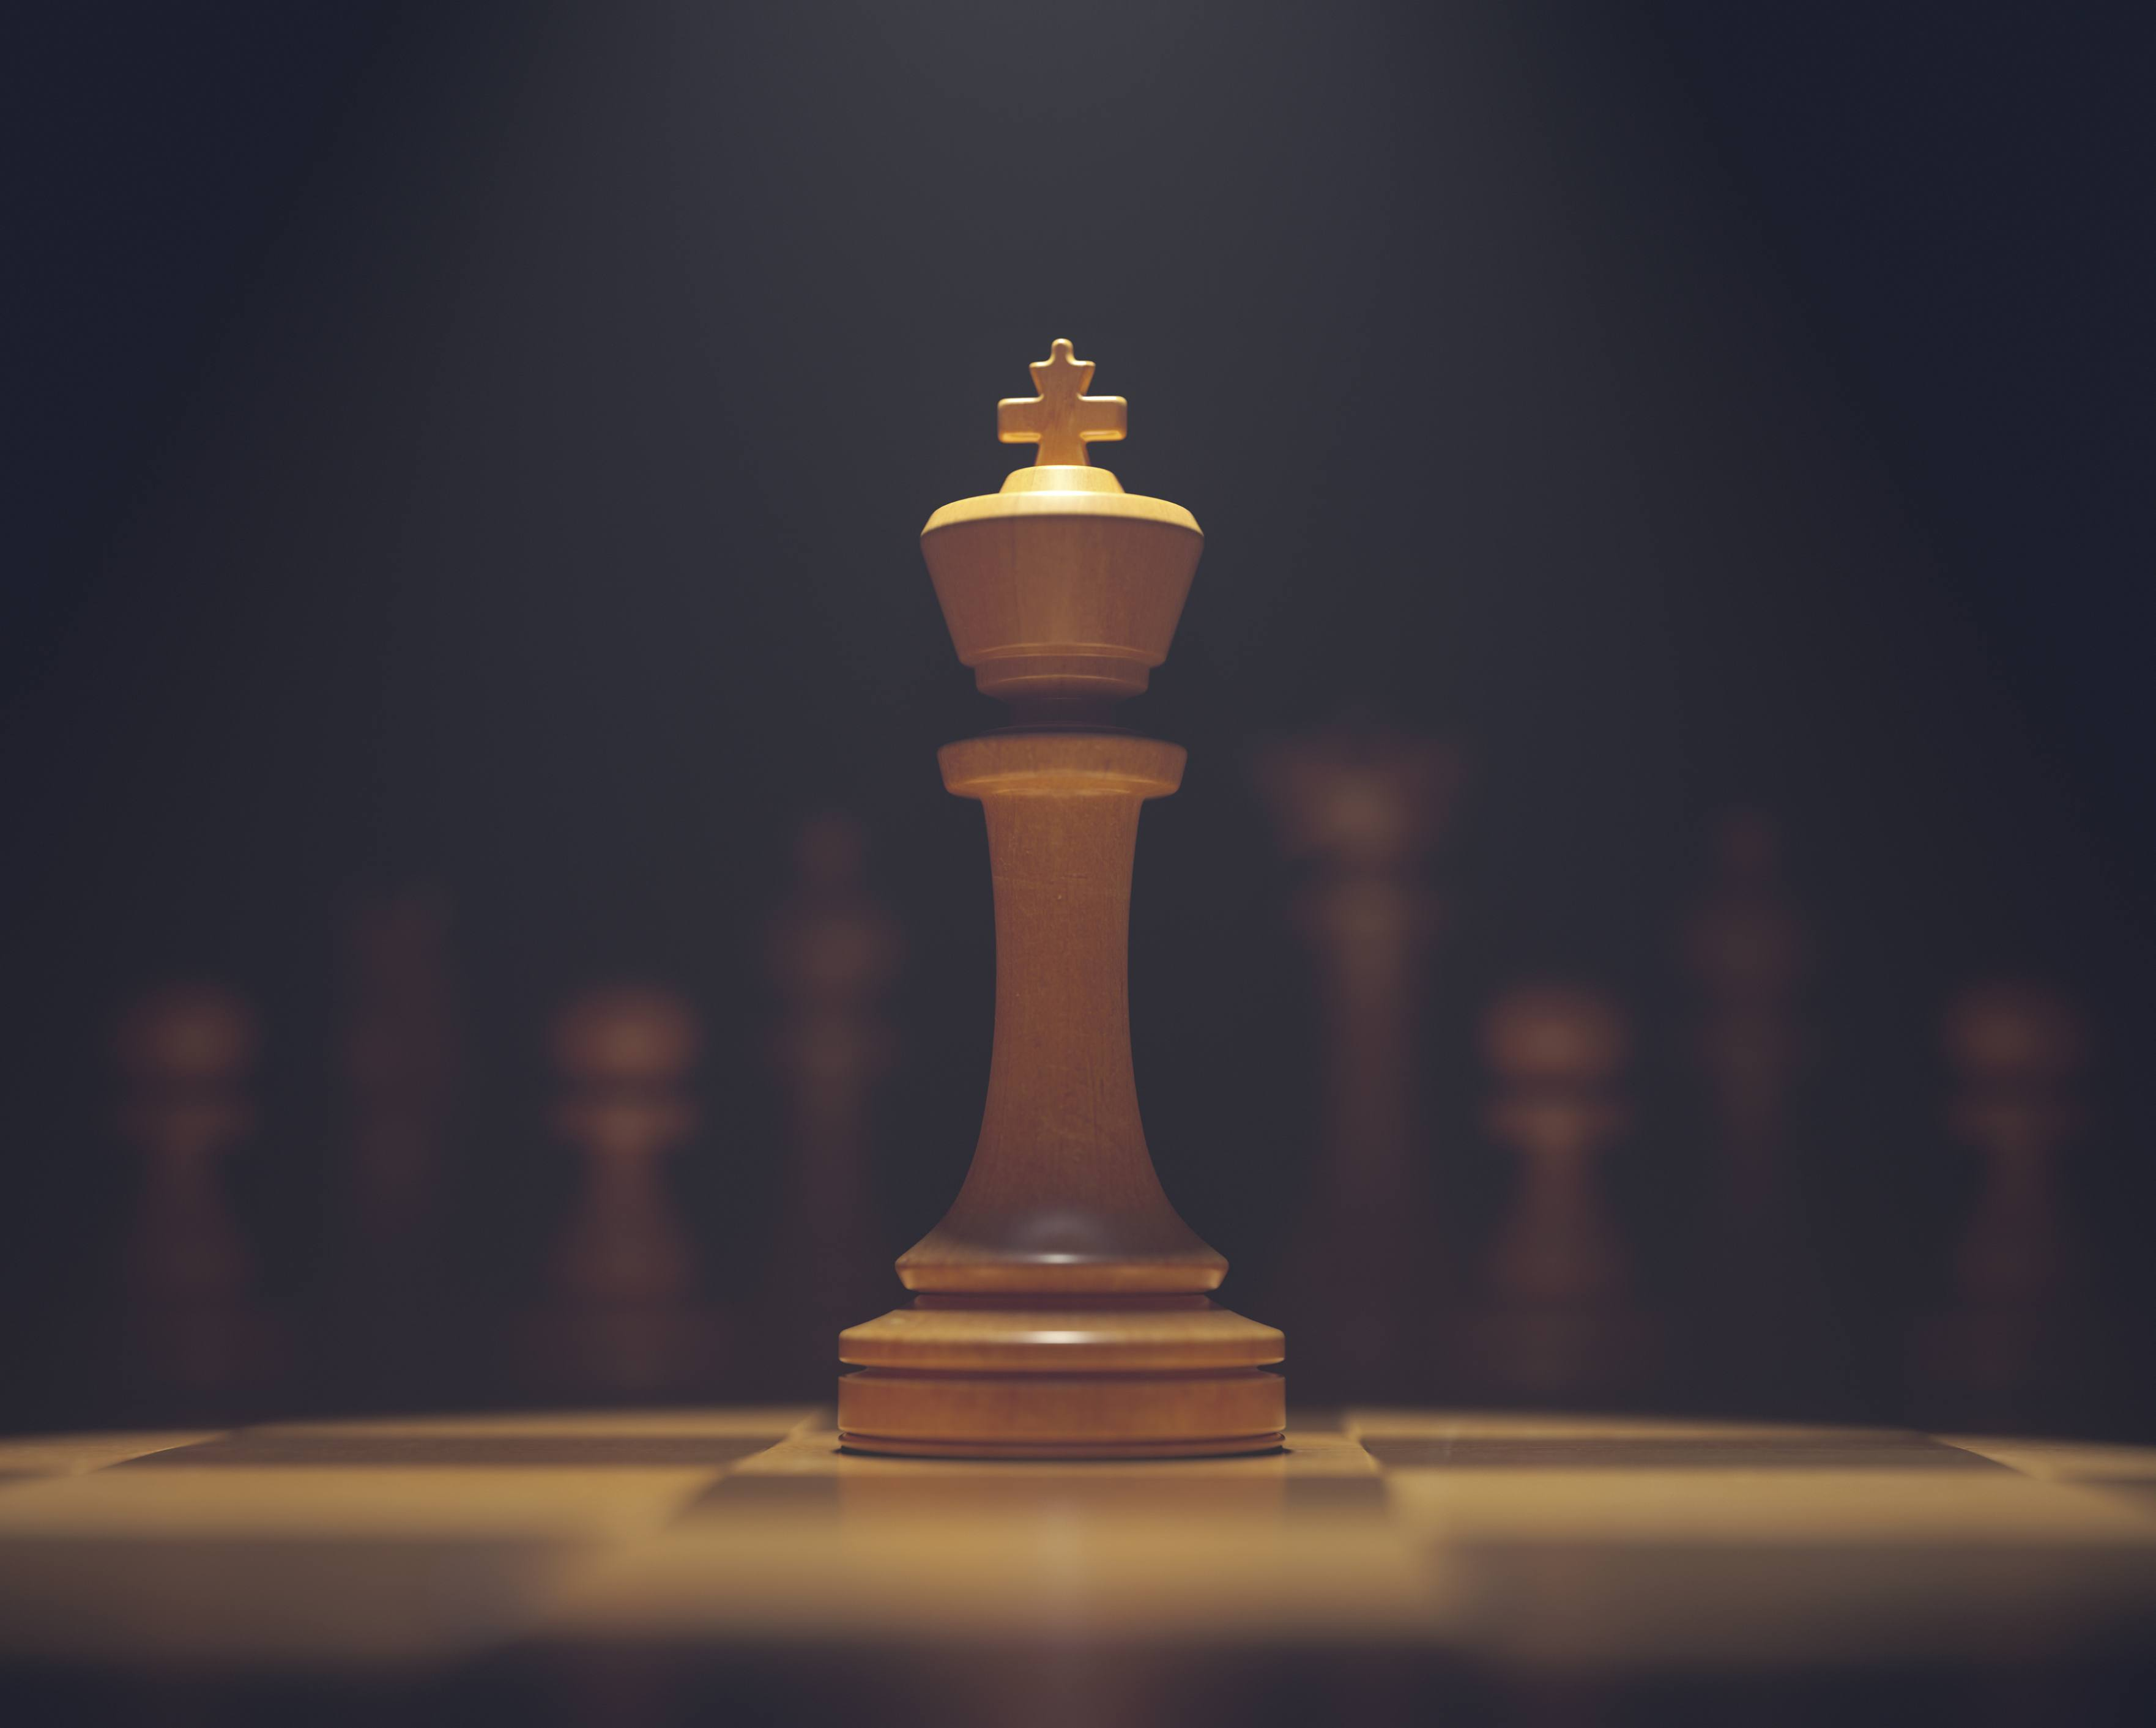 Chess king on board